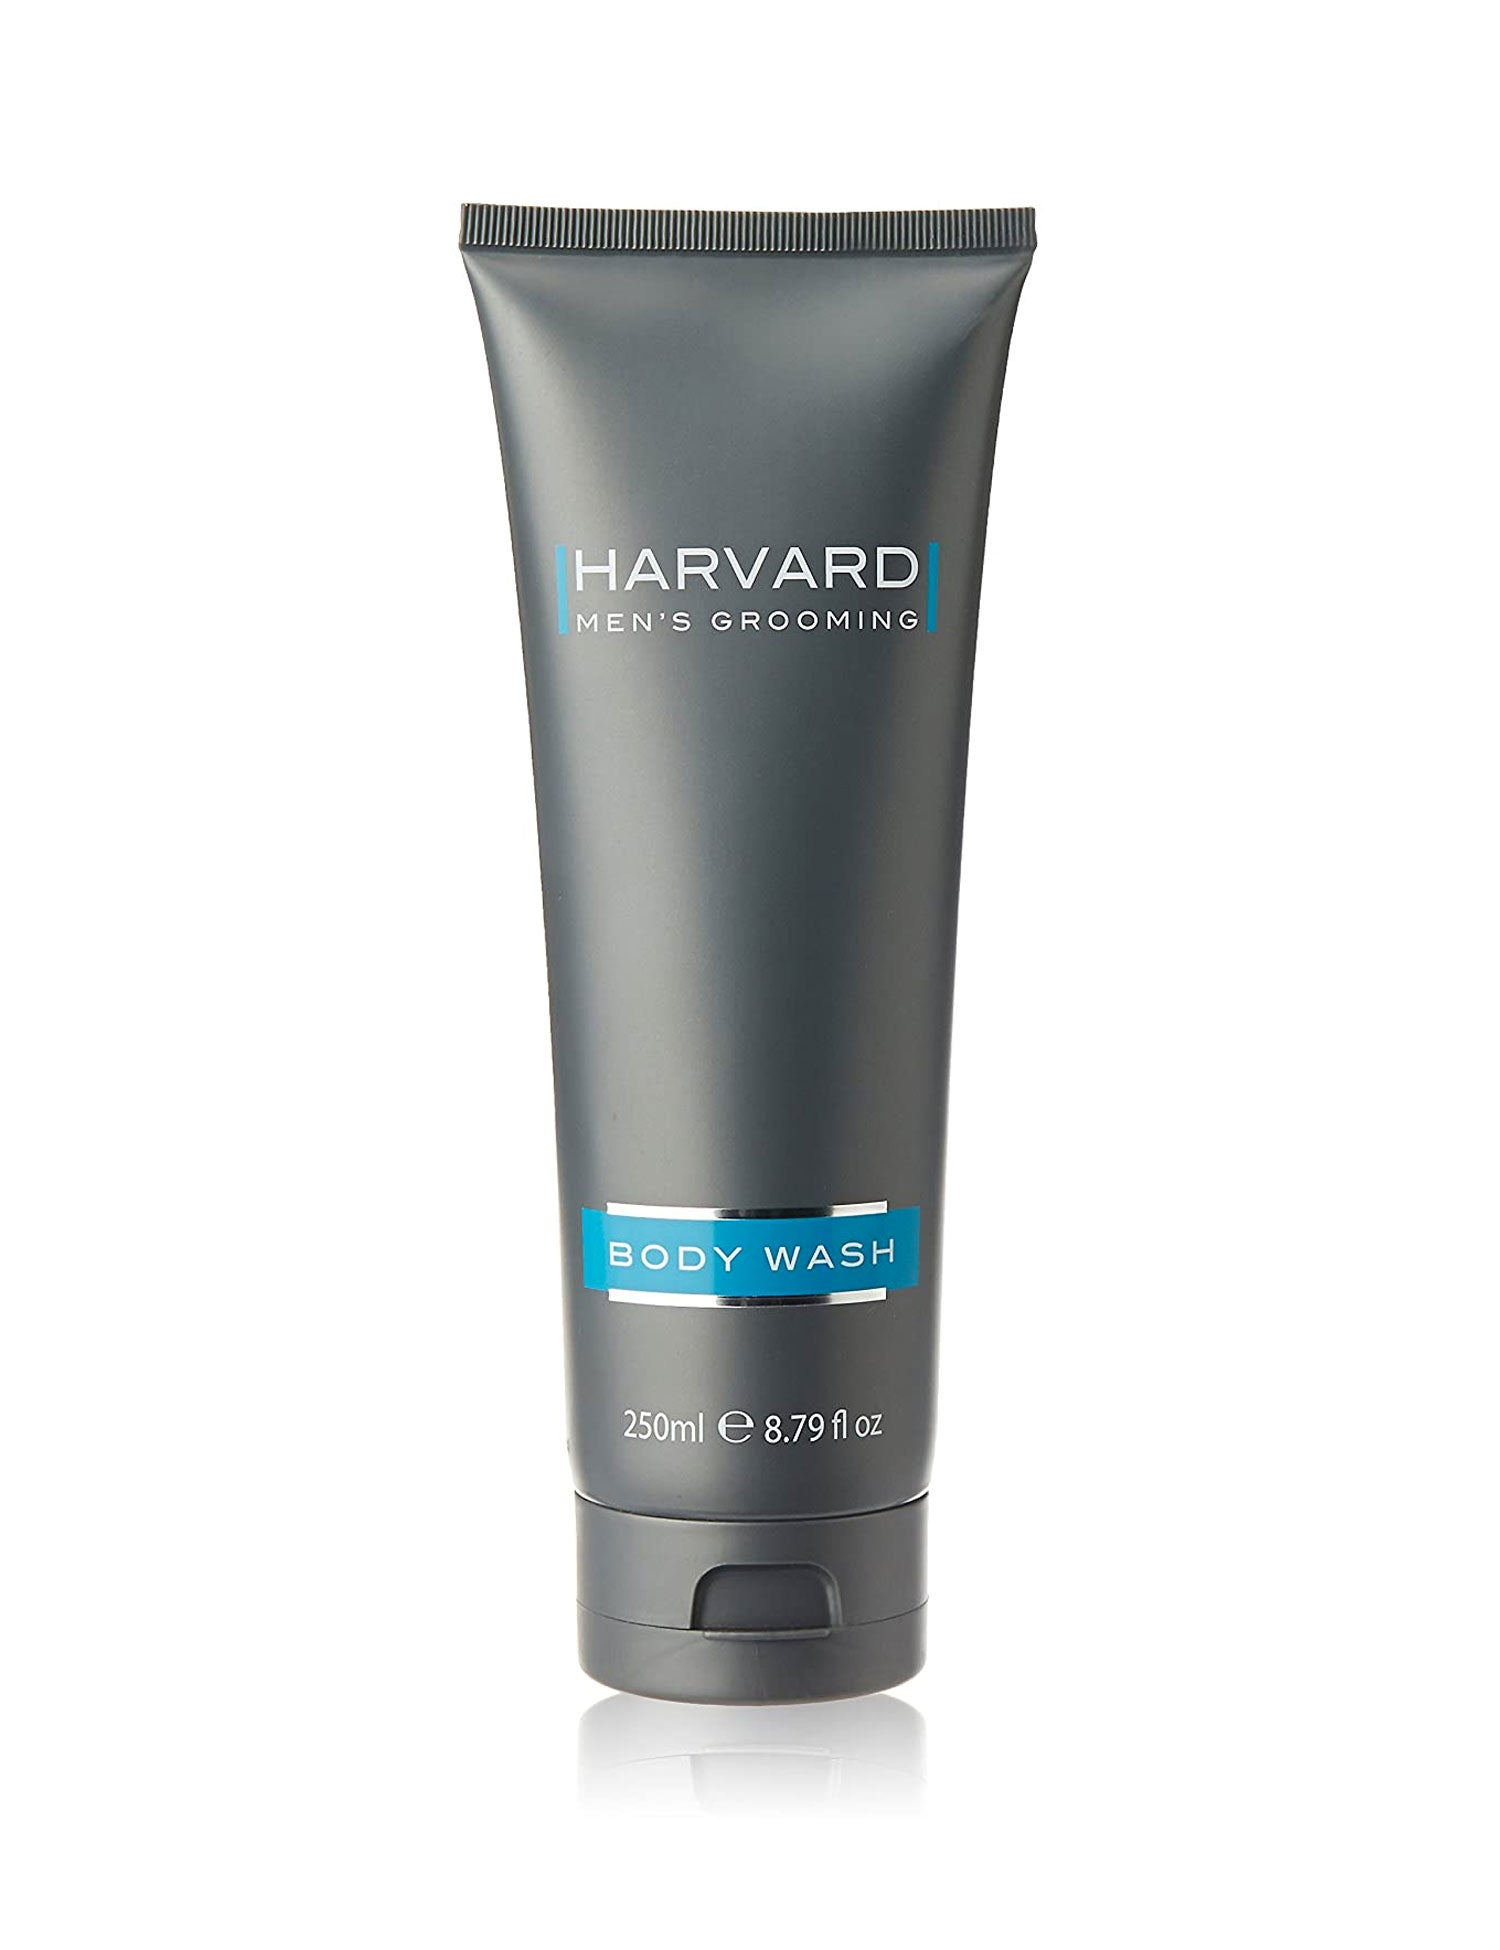 Harvard Body Wash 250ml